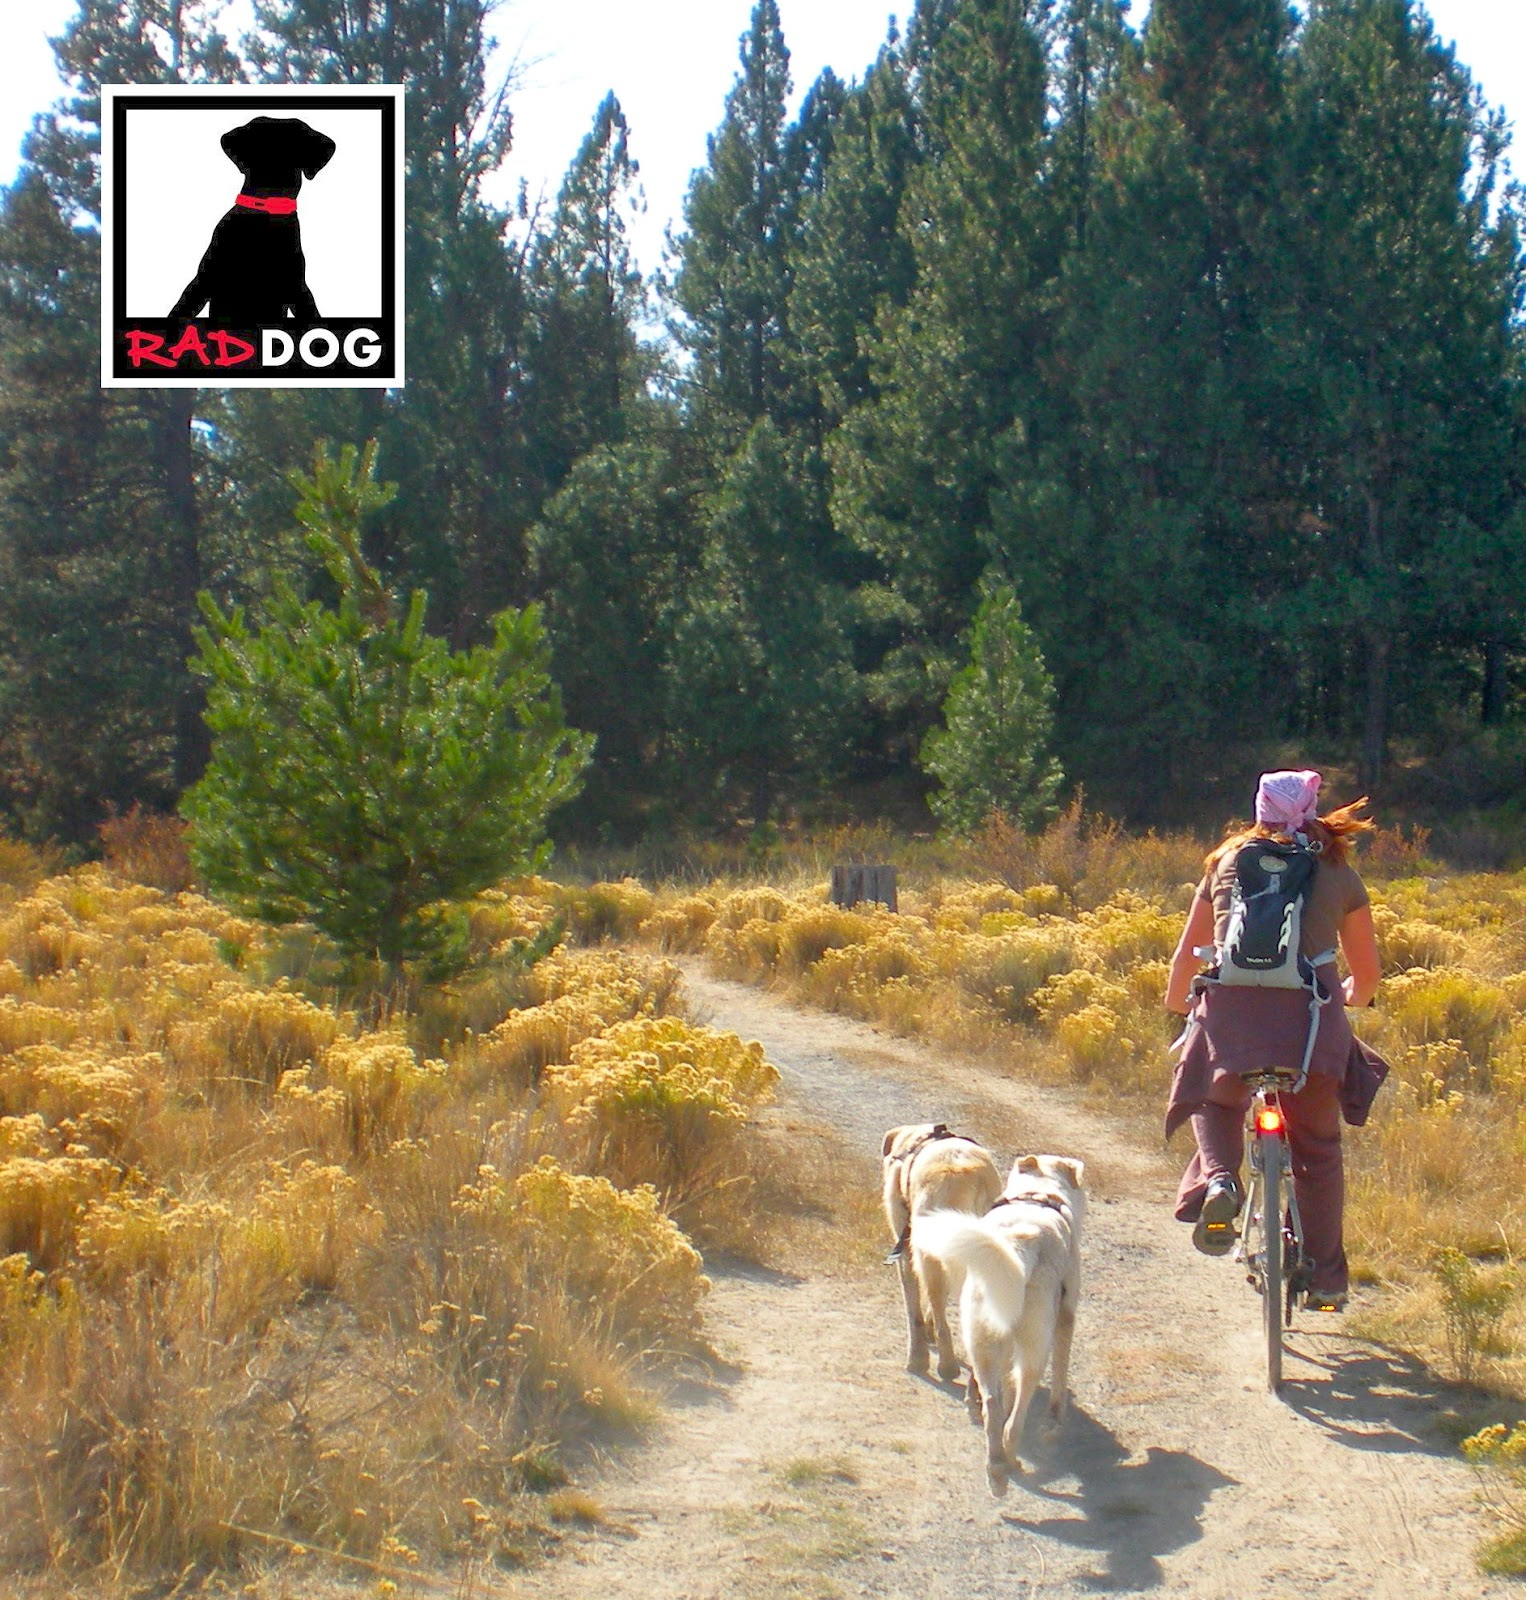 GIRL MOUNTAIN BIKING WITH DOGS ON TRAIL